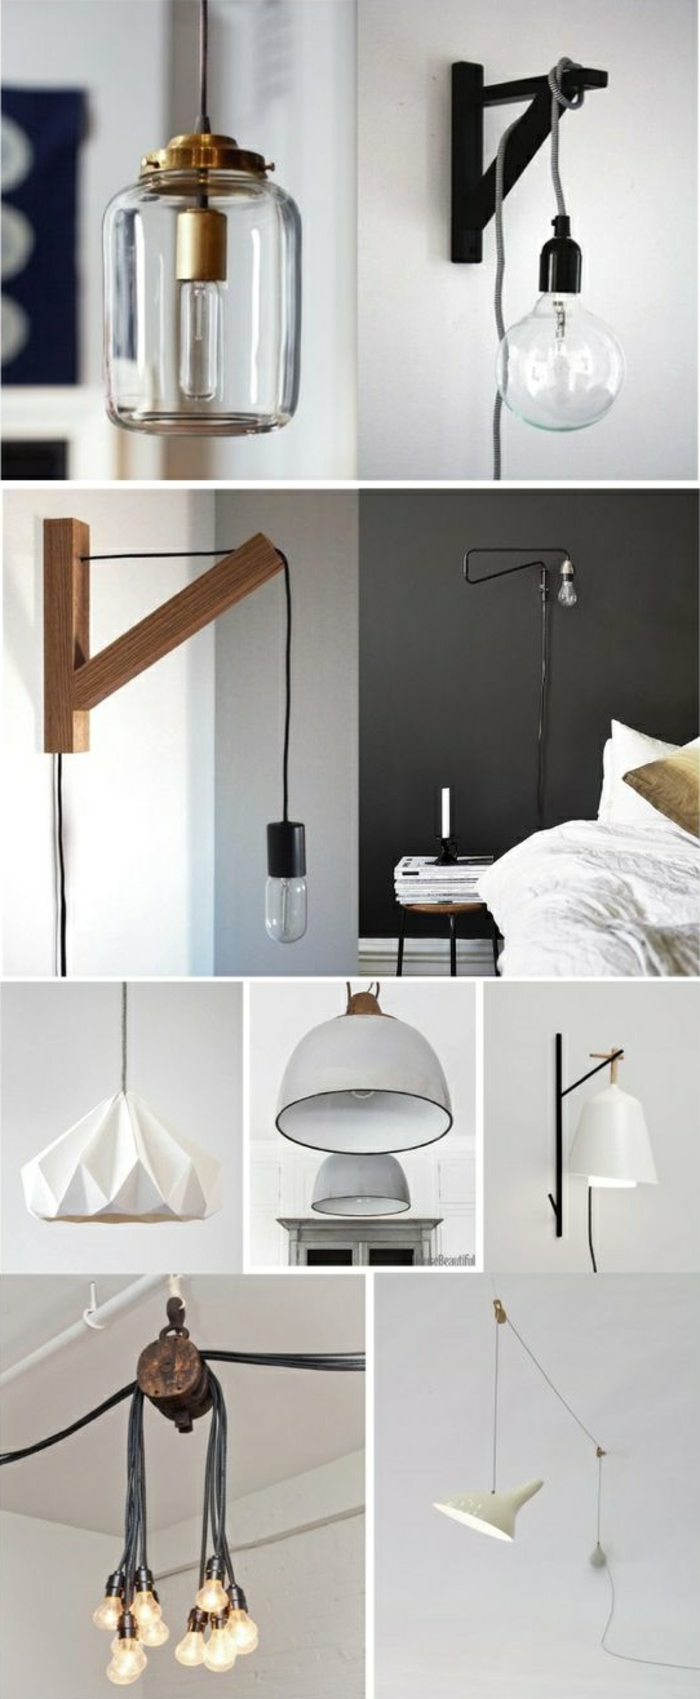 lampen idee landhausstil. Black Bedroom Furniture Sets. Home Design Ideas